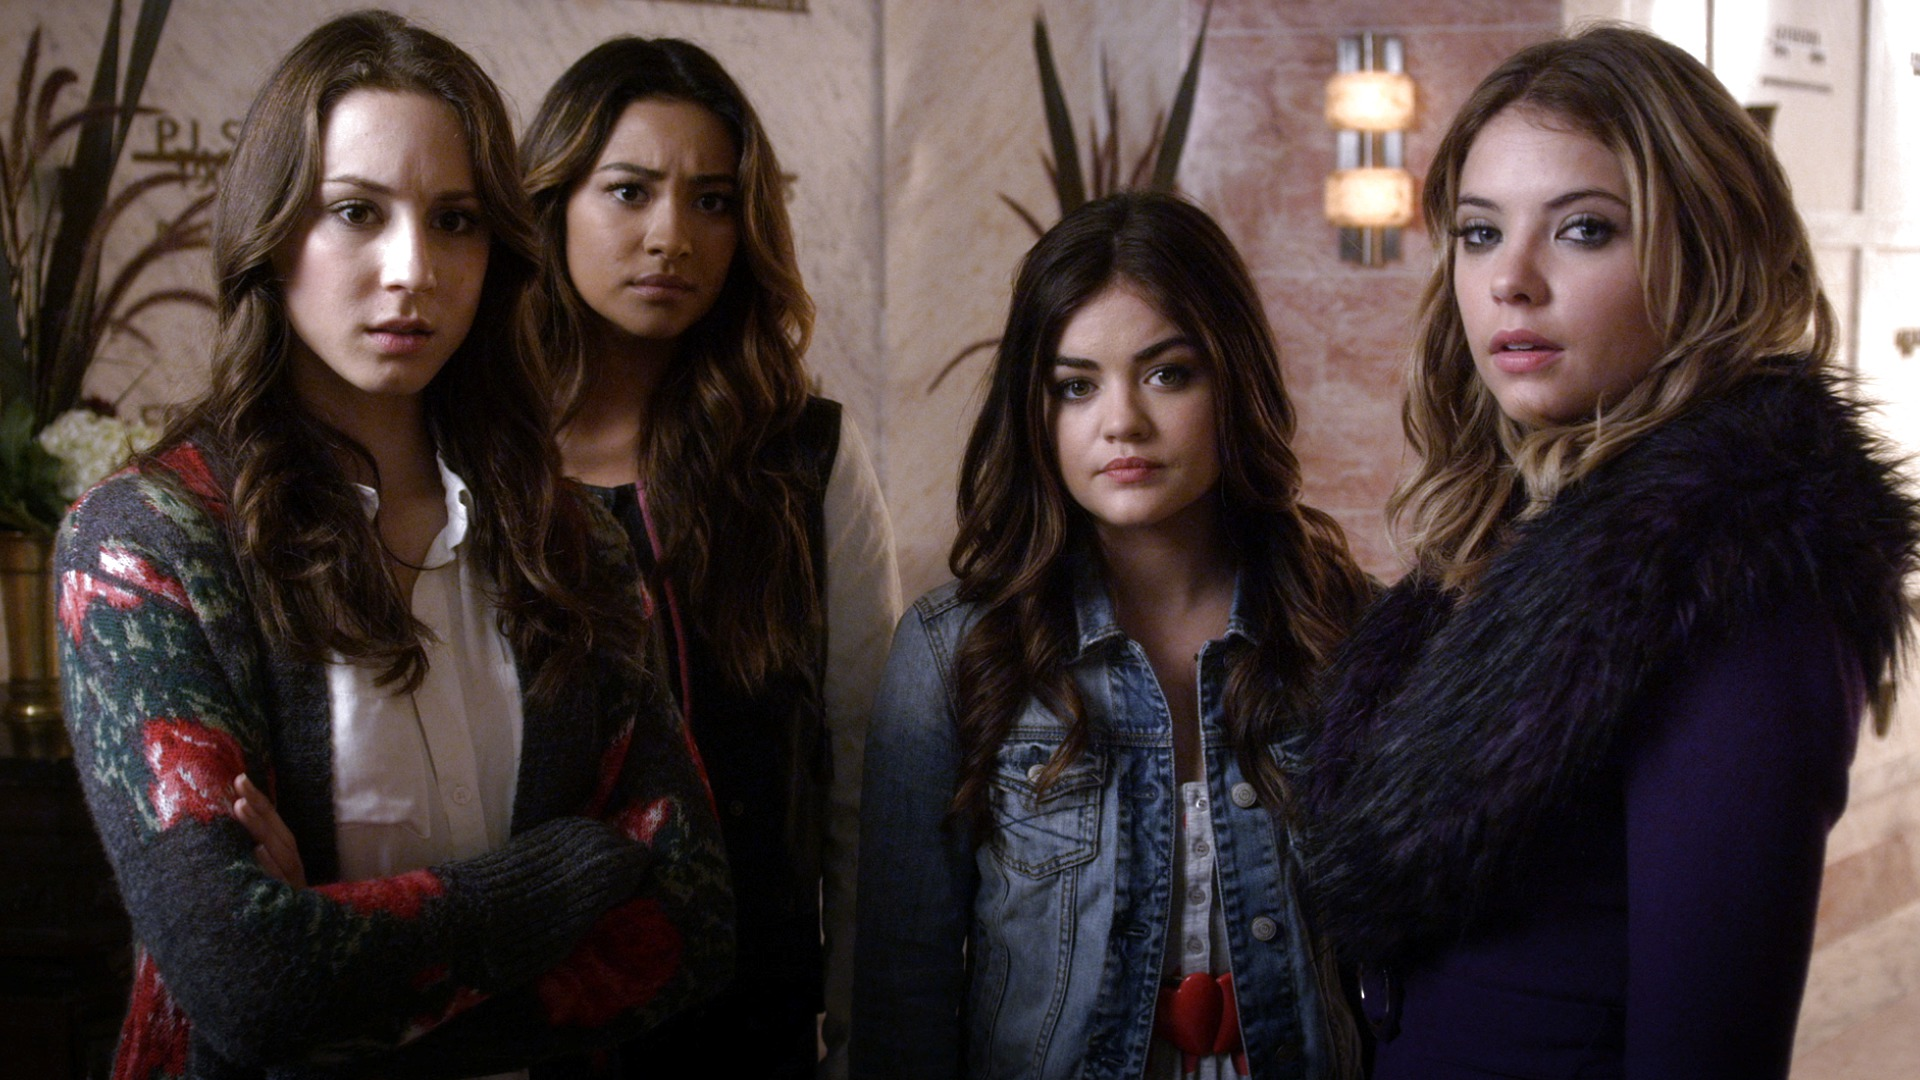 Fashion from pretty little liars 36